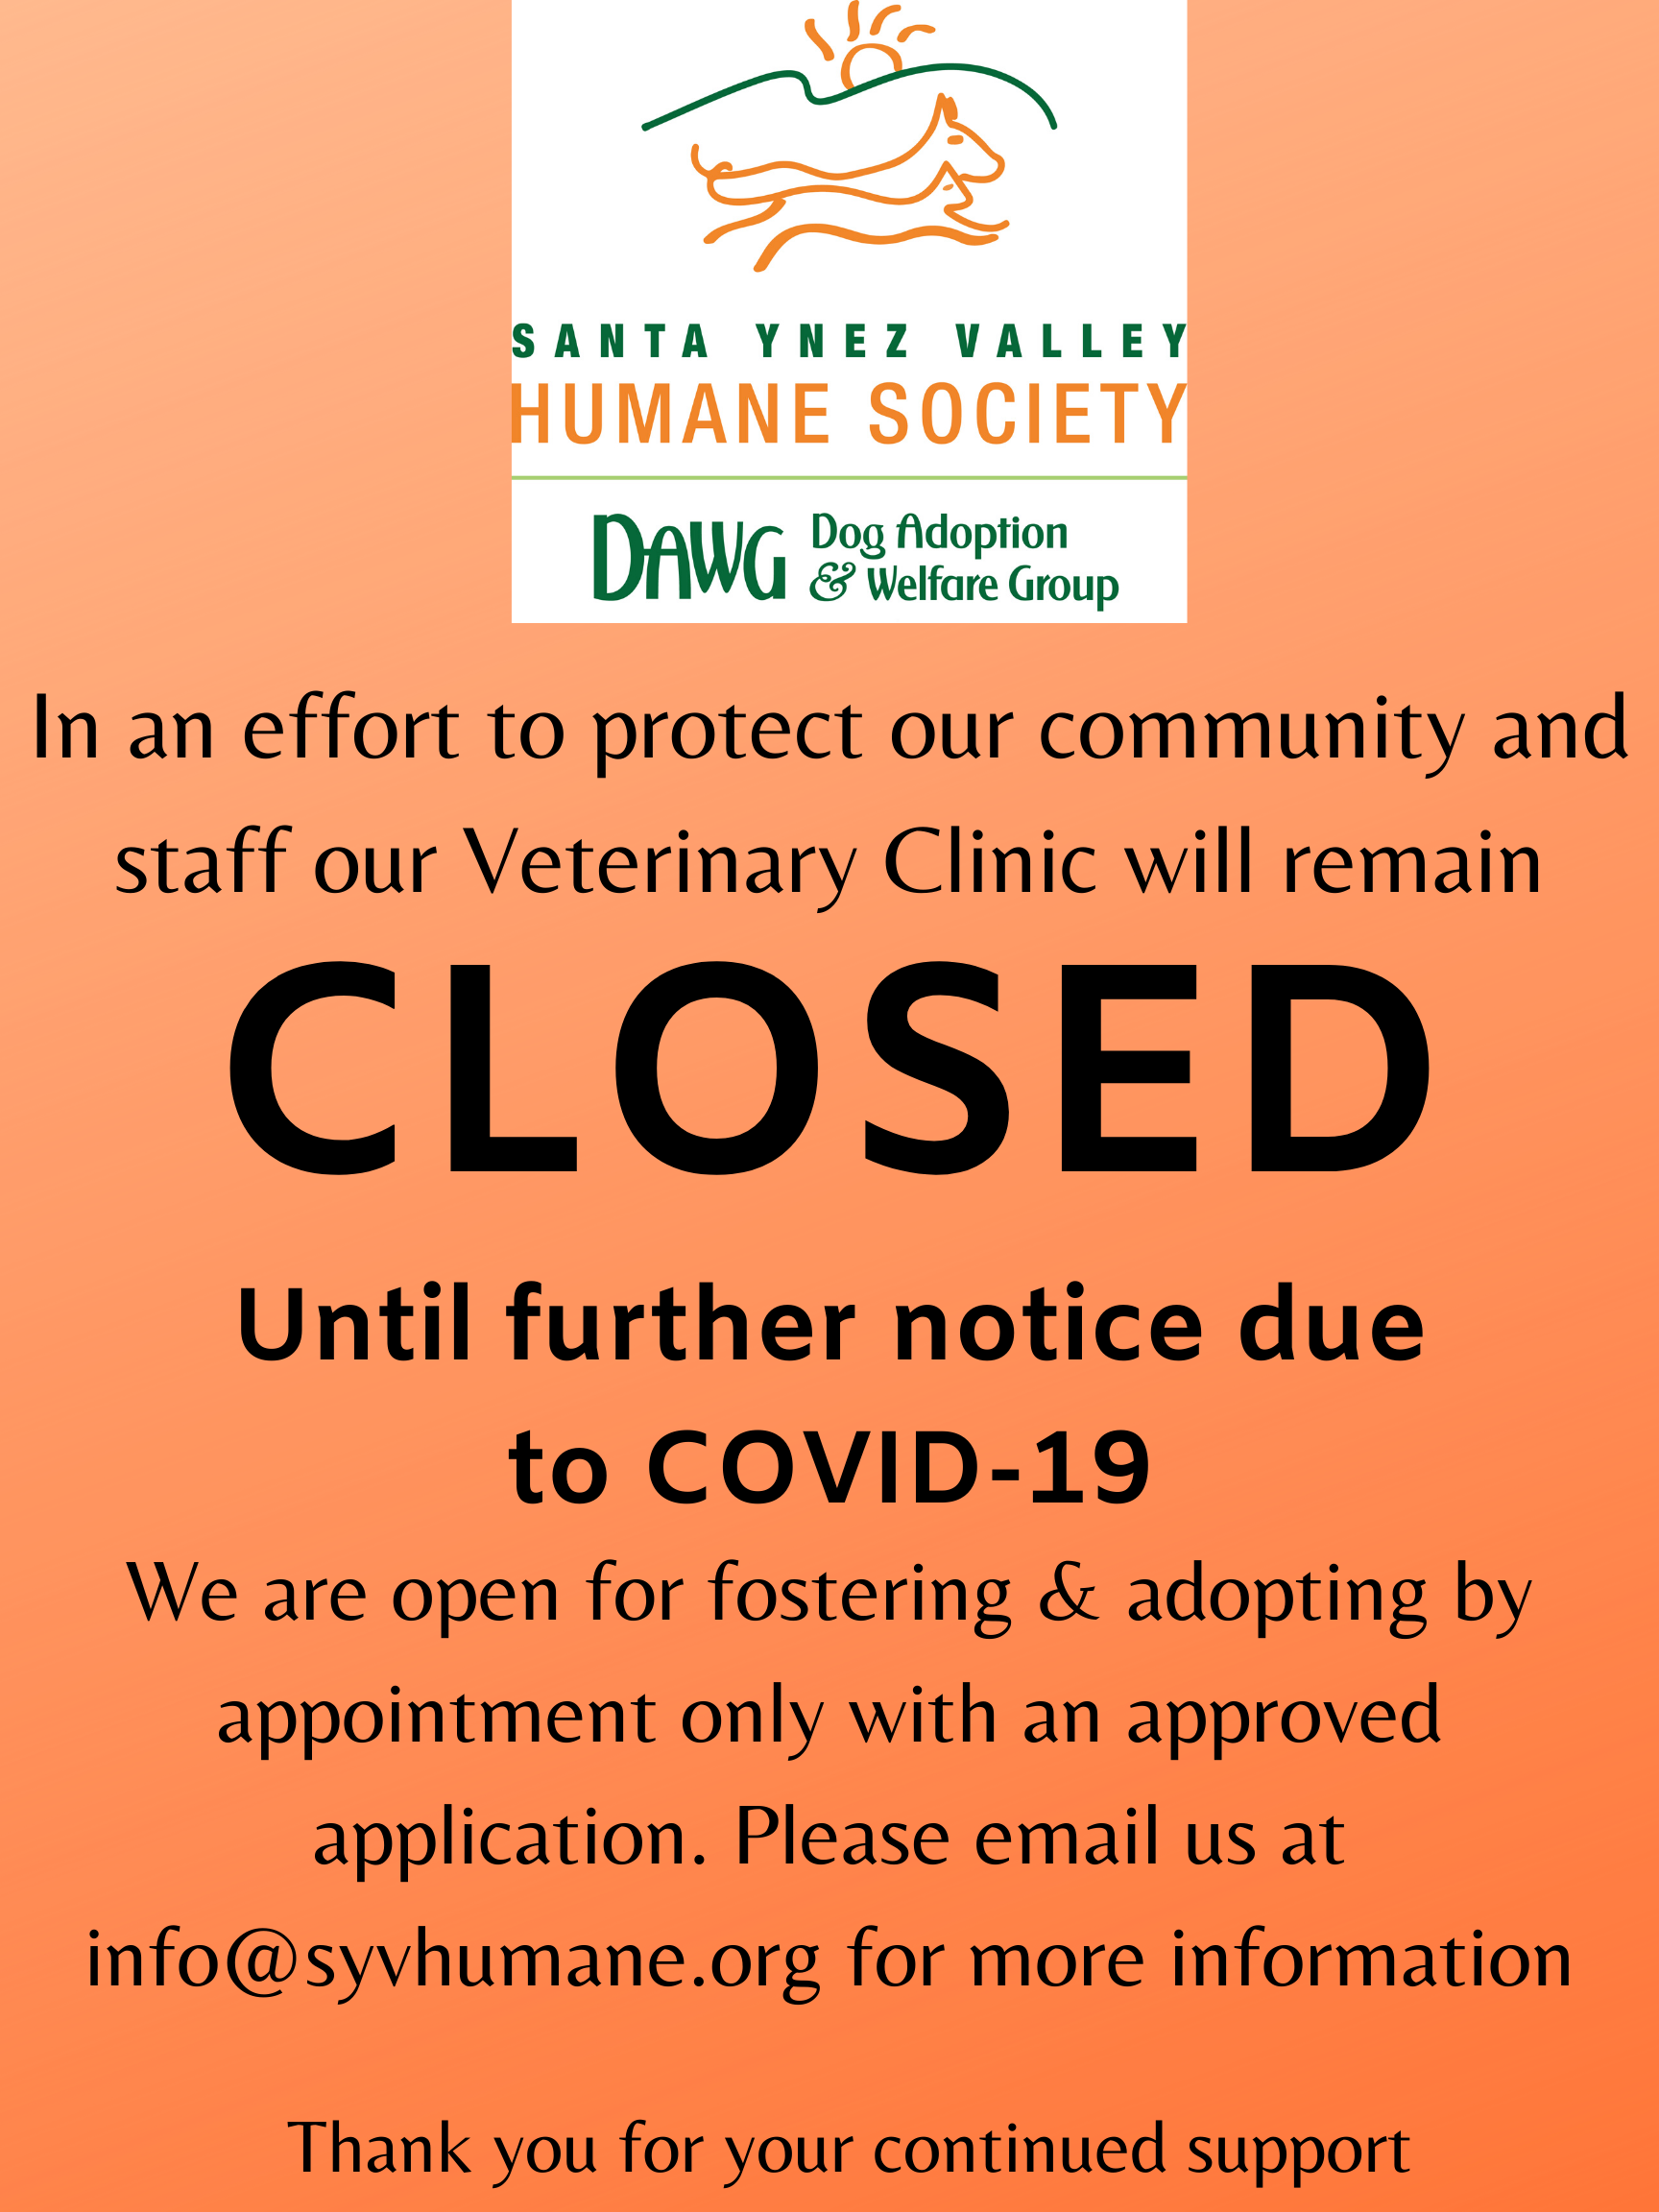 Shelter Update Regarding COVID-19